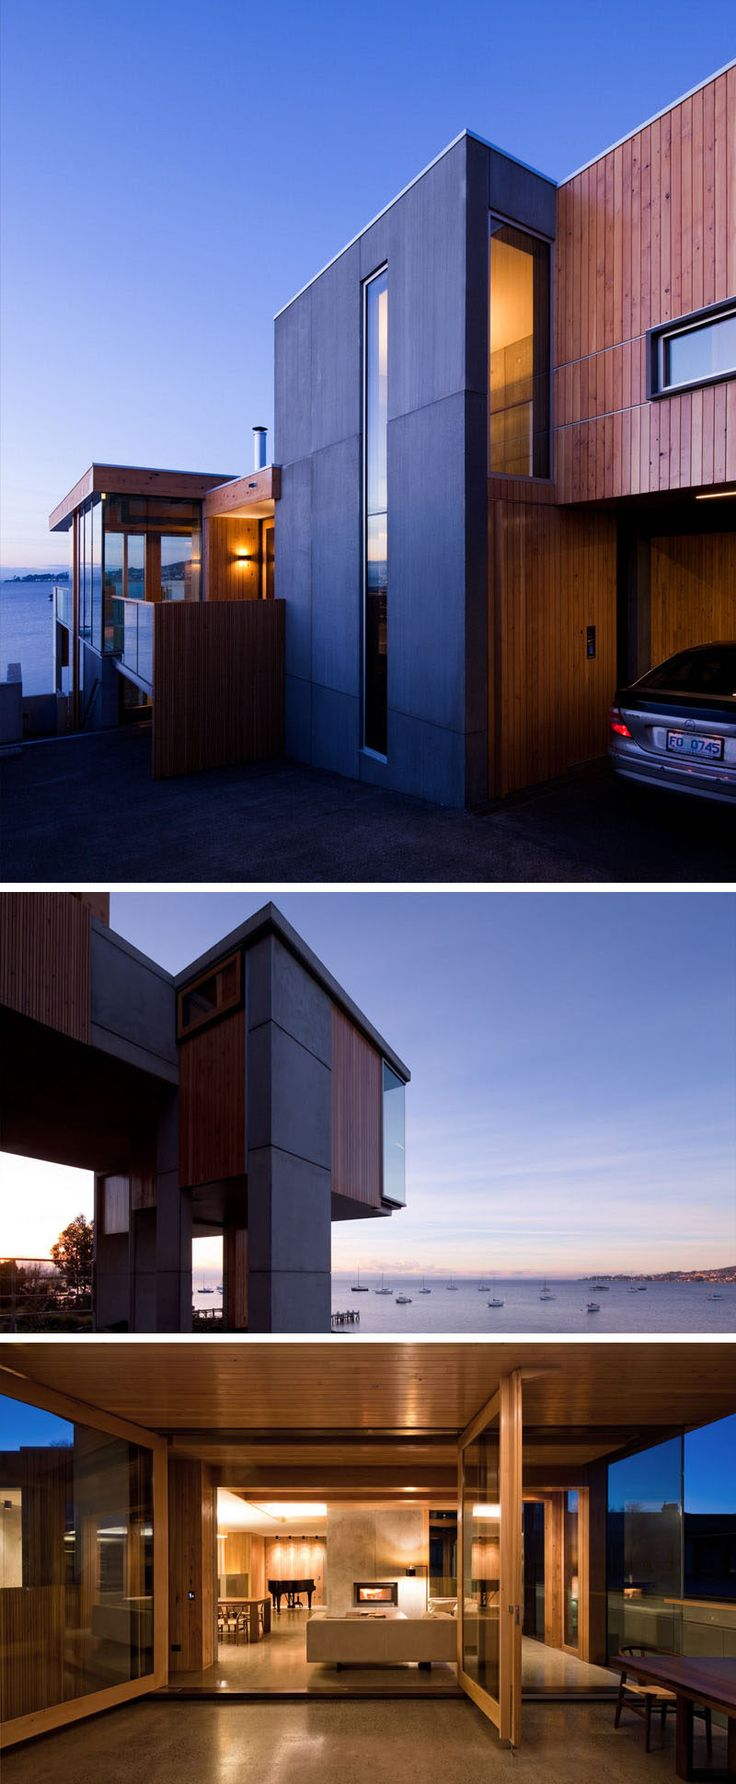 Modern Day Architecture 445 best architecture images on pinterest | architecture, black